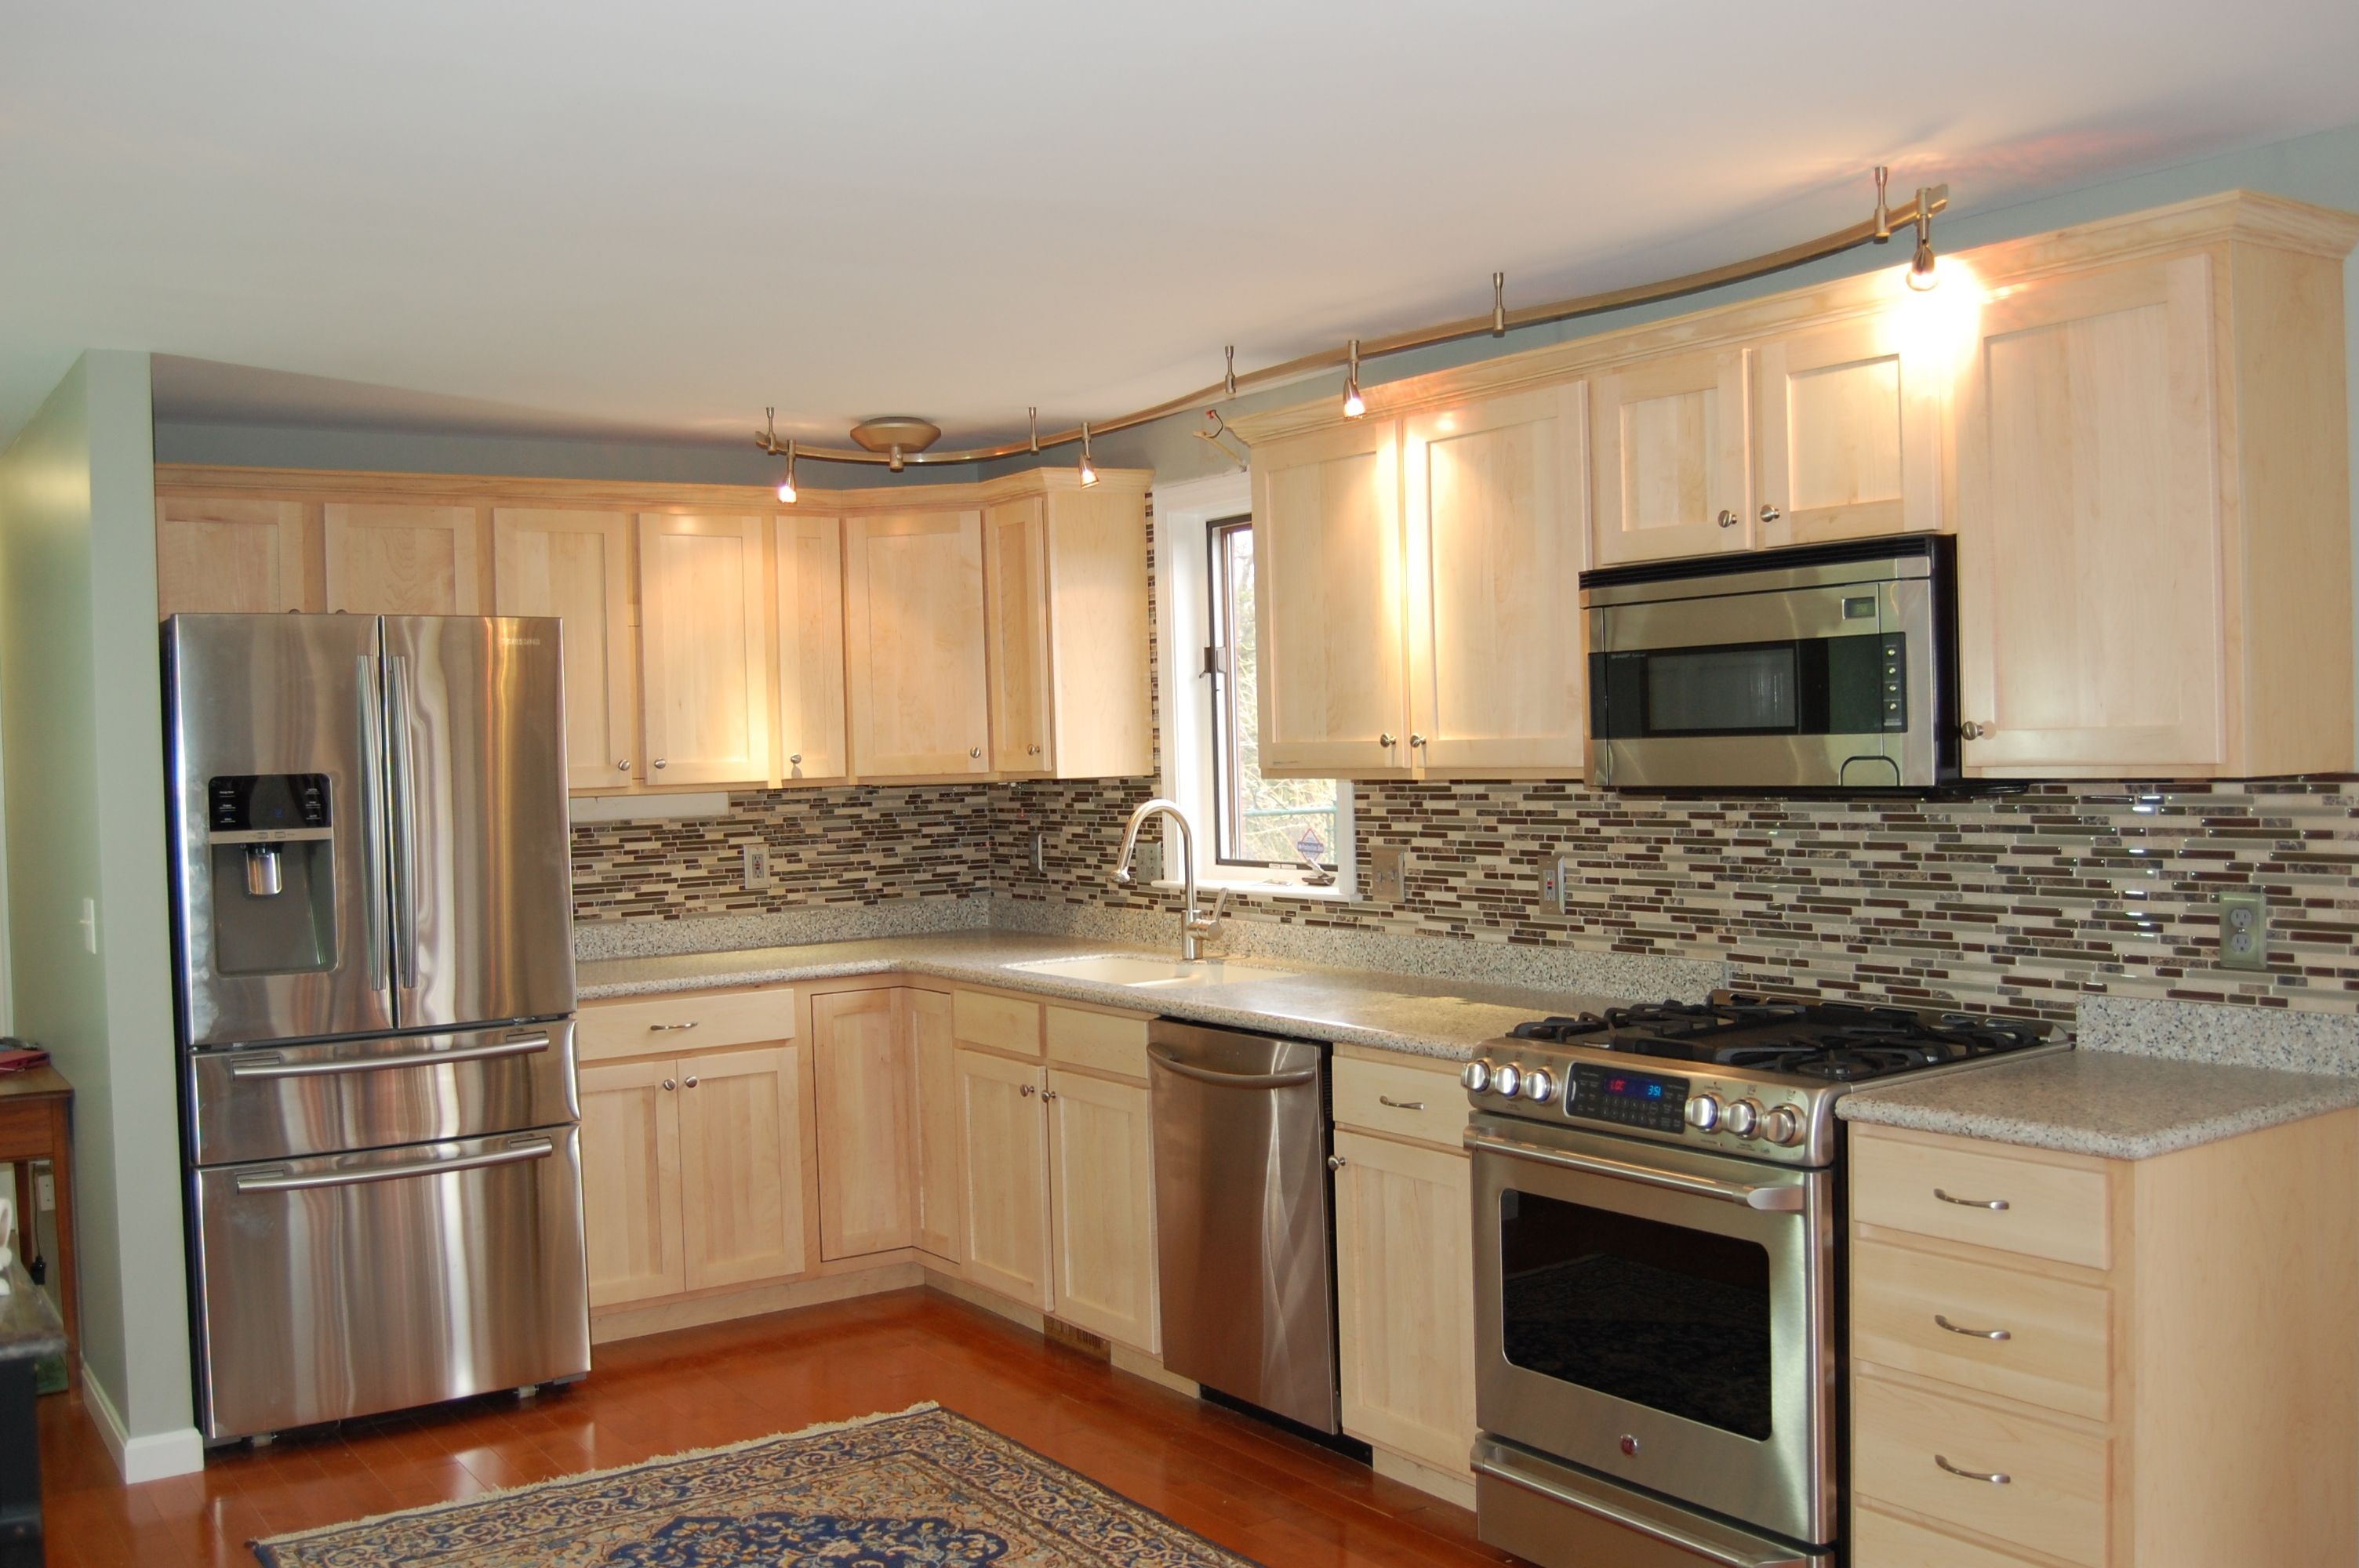 kitchen cabinets photo gallery cabinet refacing in massachusetts photo of kitchen af on kitchen cabinets refacing id=28725